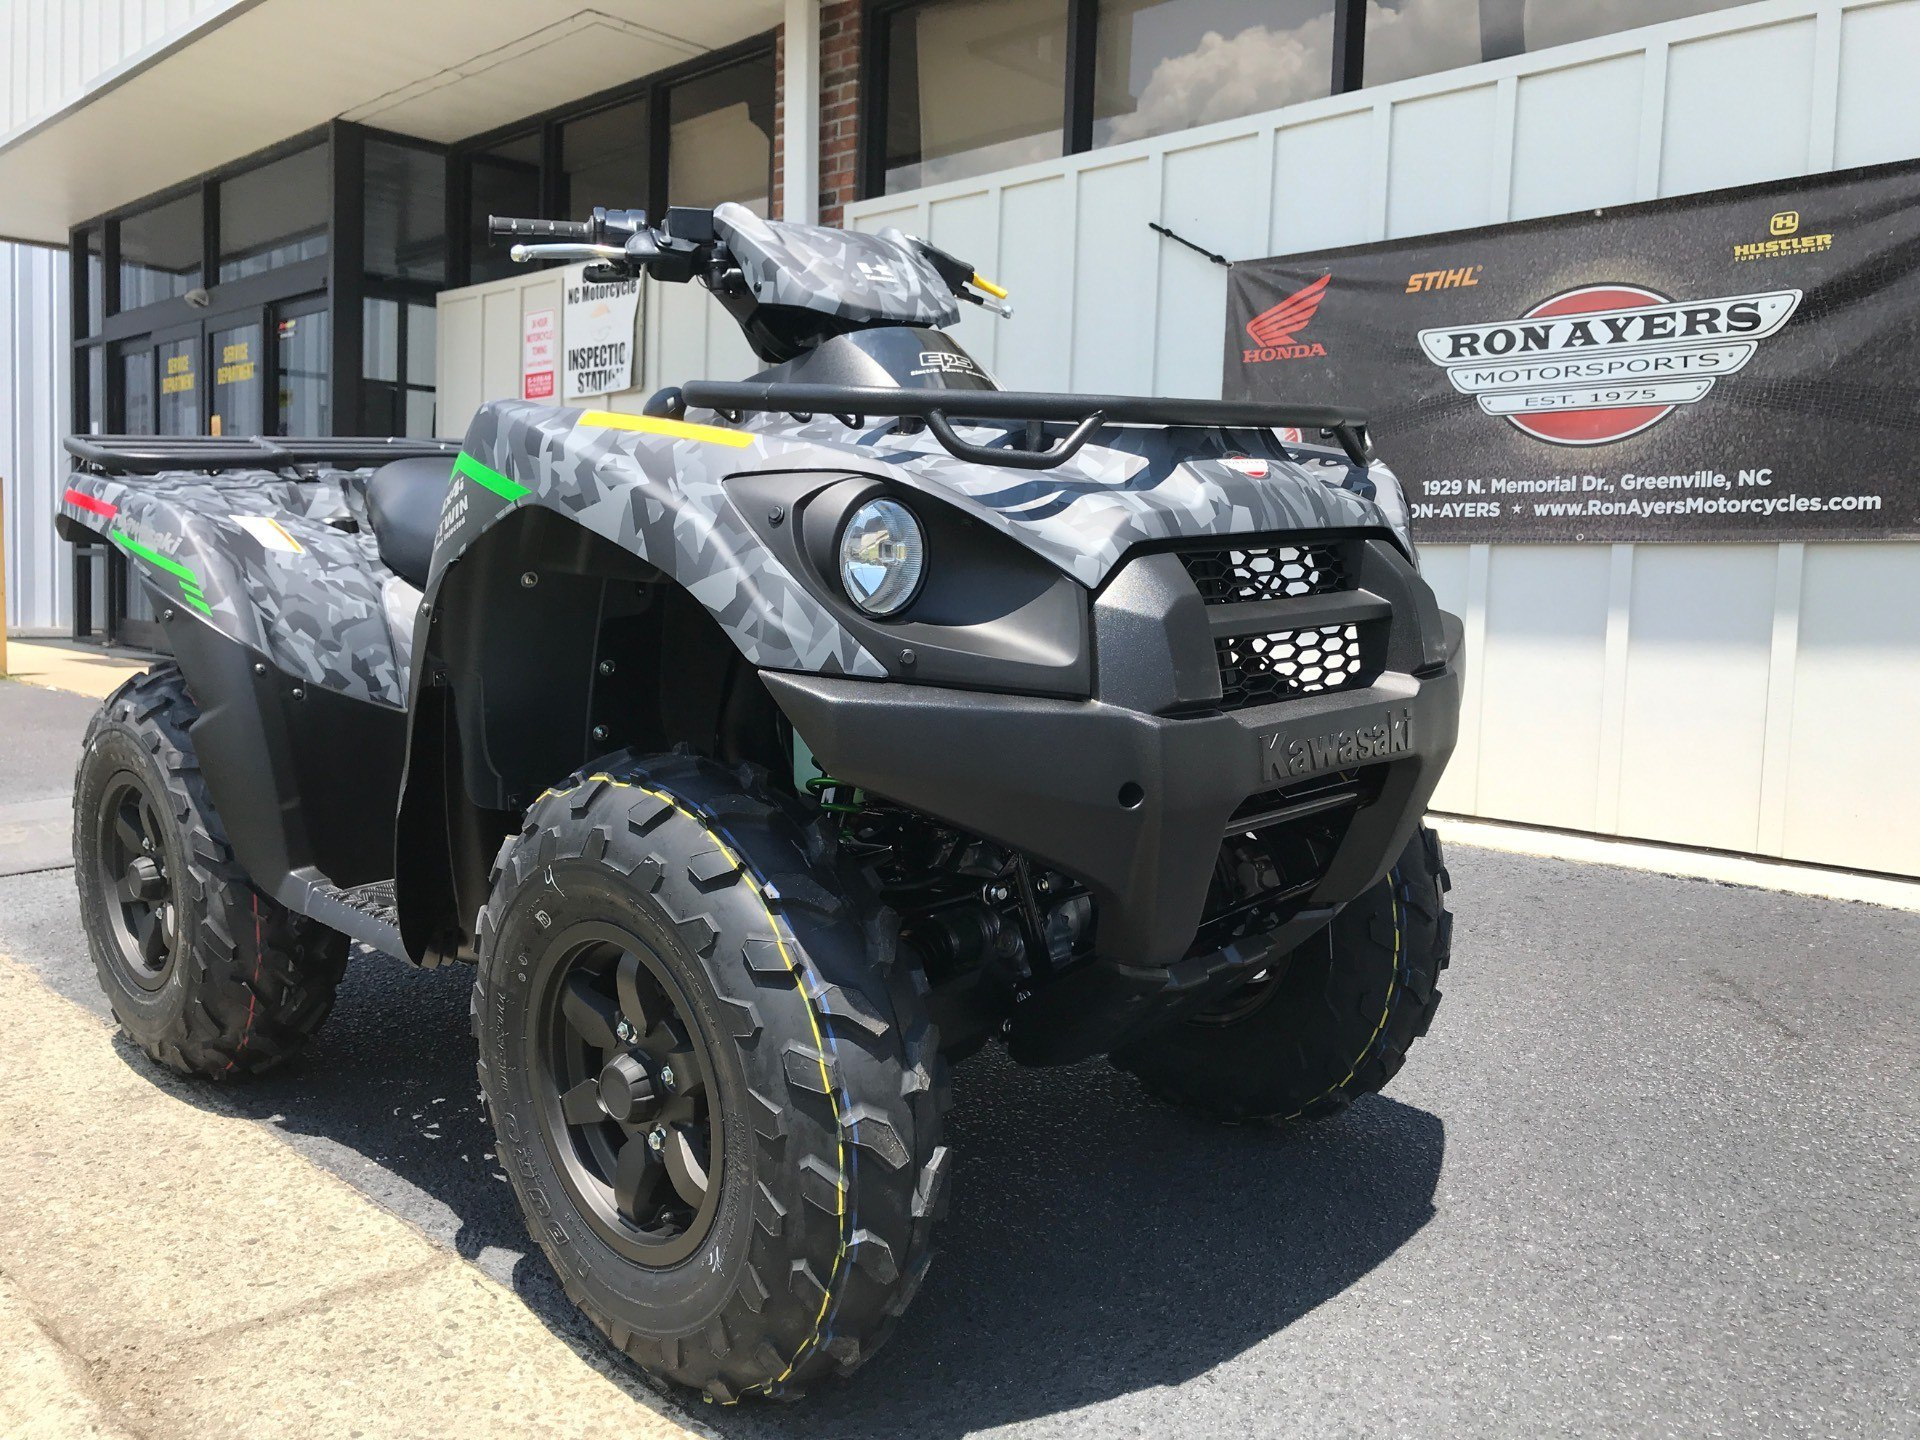 2021 Kawasaki Brute Force 750 4x4i EPS in Greenville, North Carolina - Photo 2